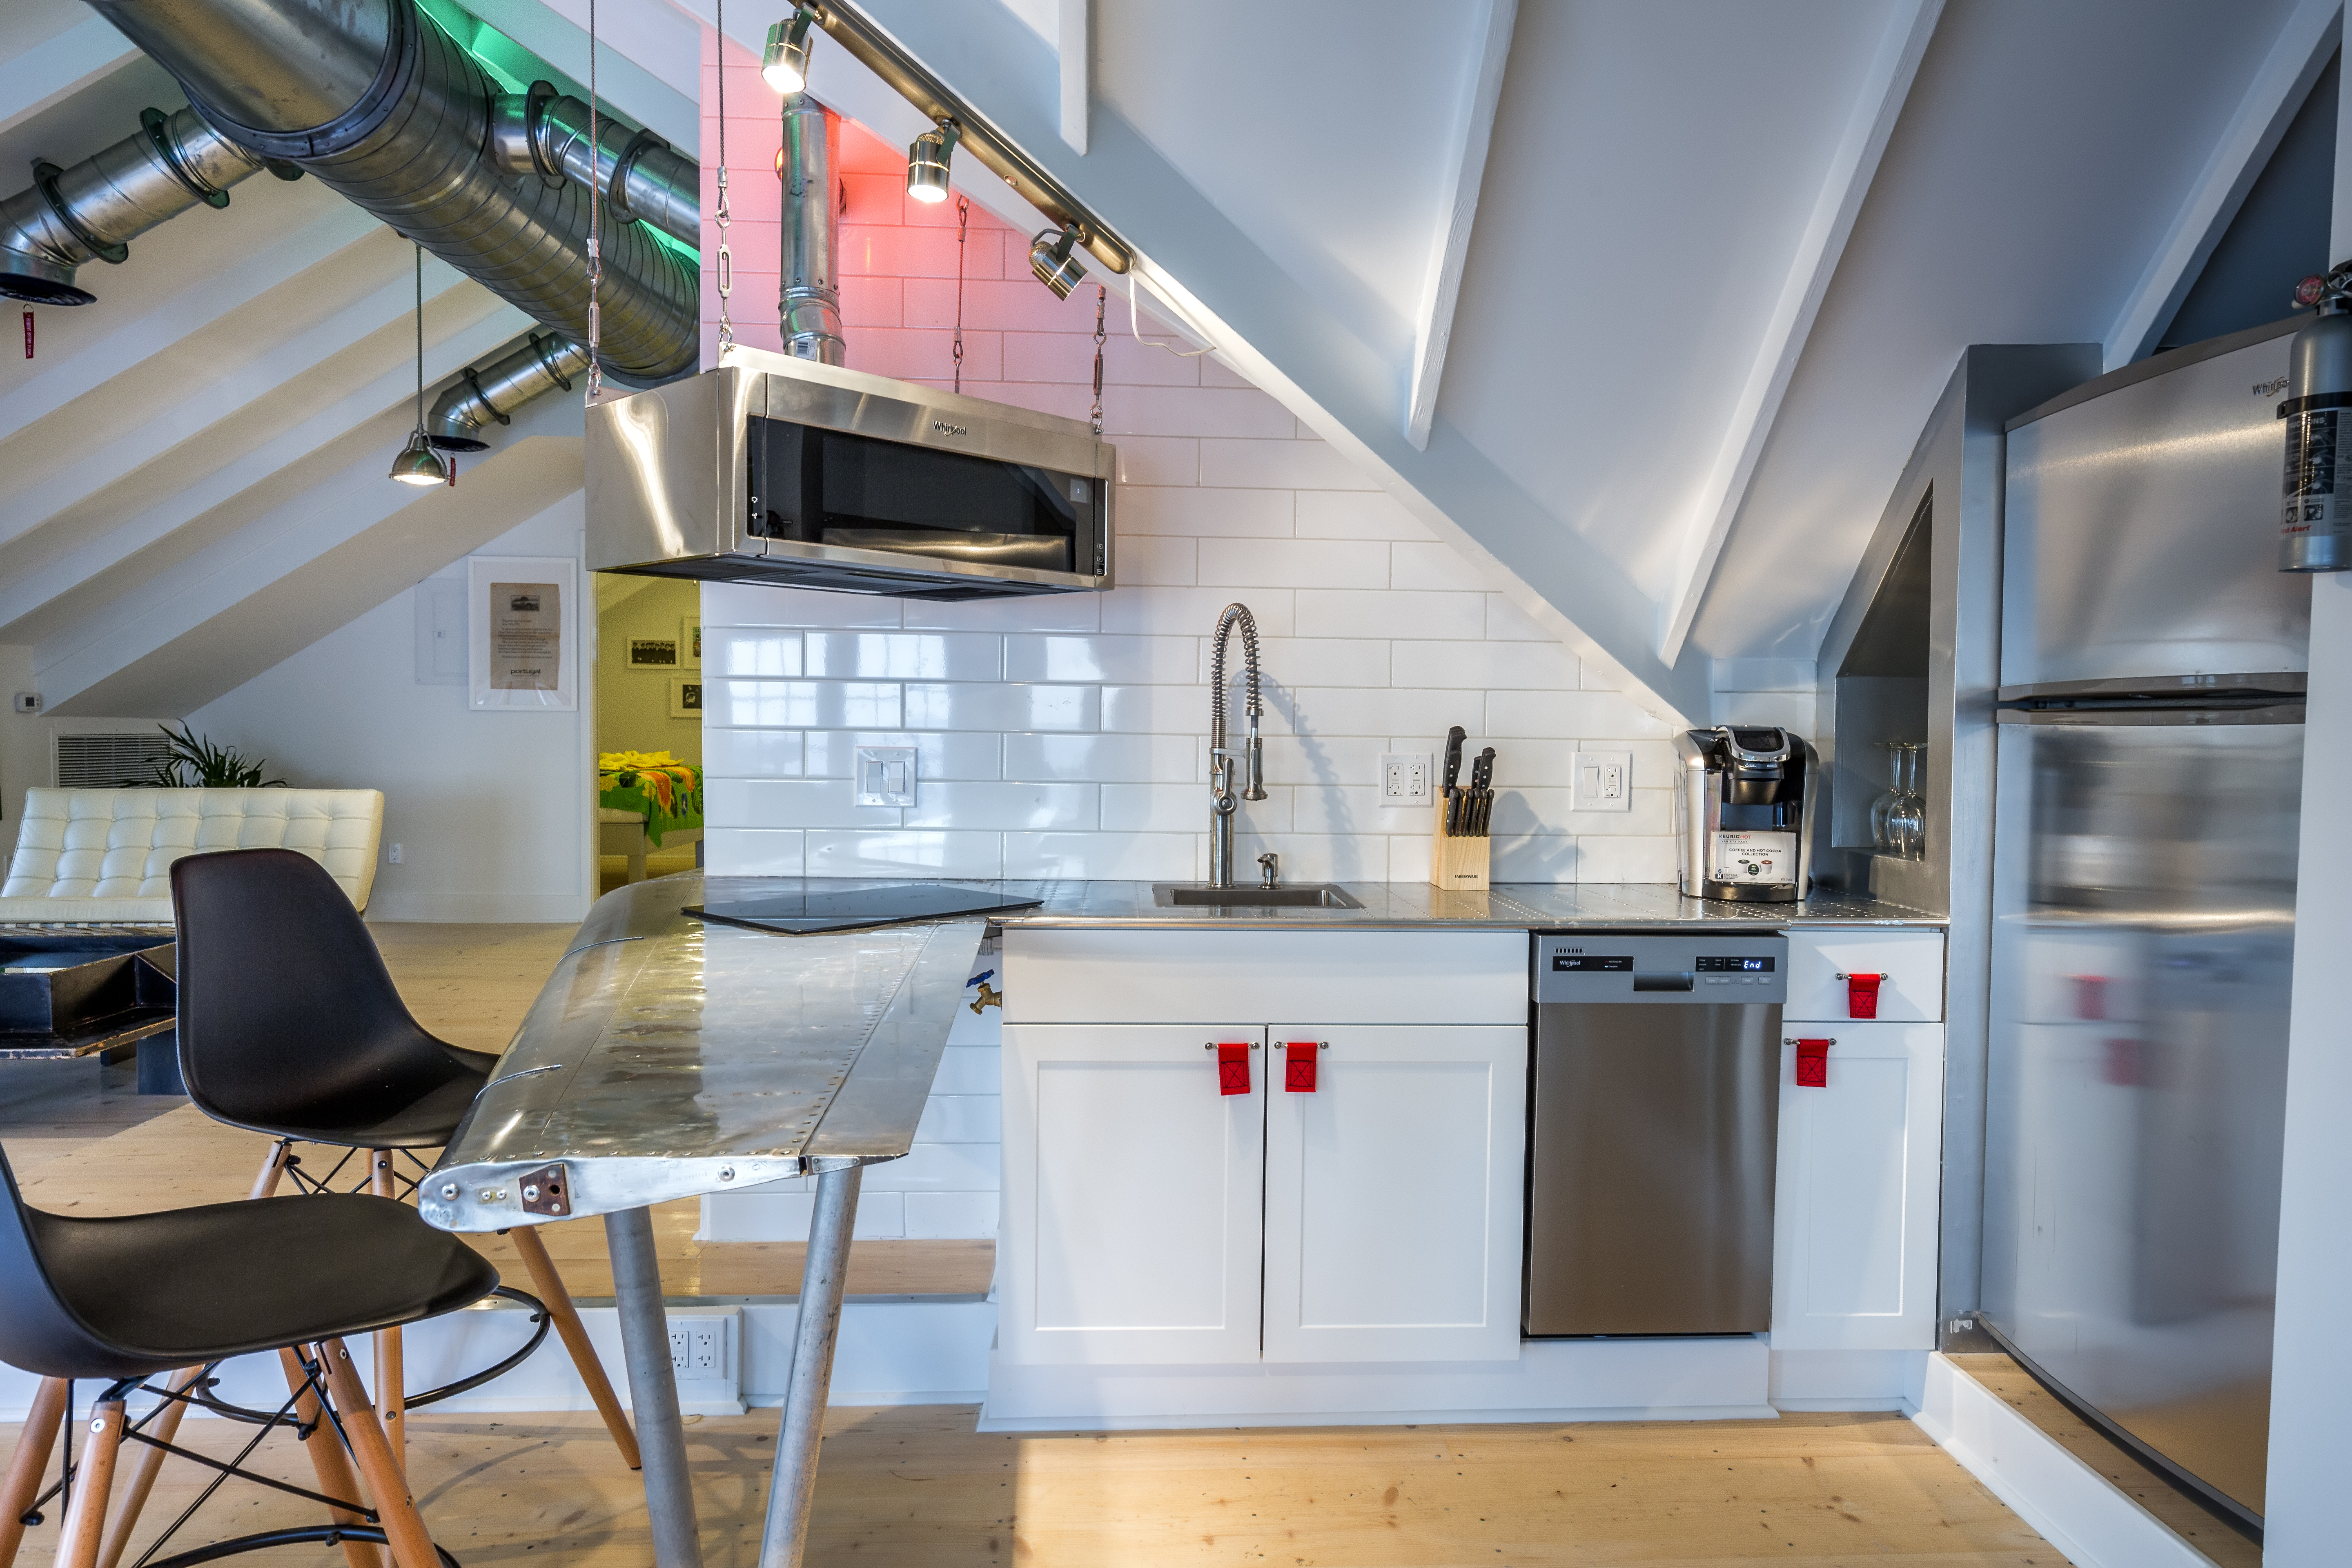 The bar/kitchen counter is made from an early aluminum plane's wing tip.